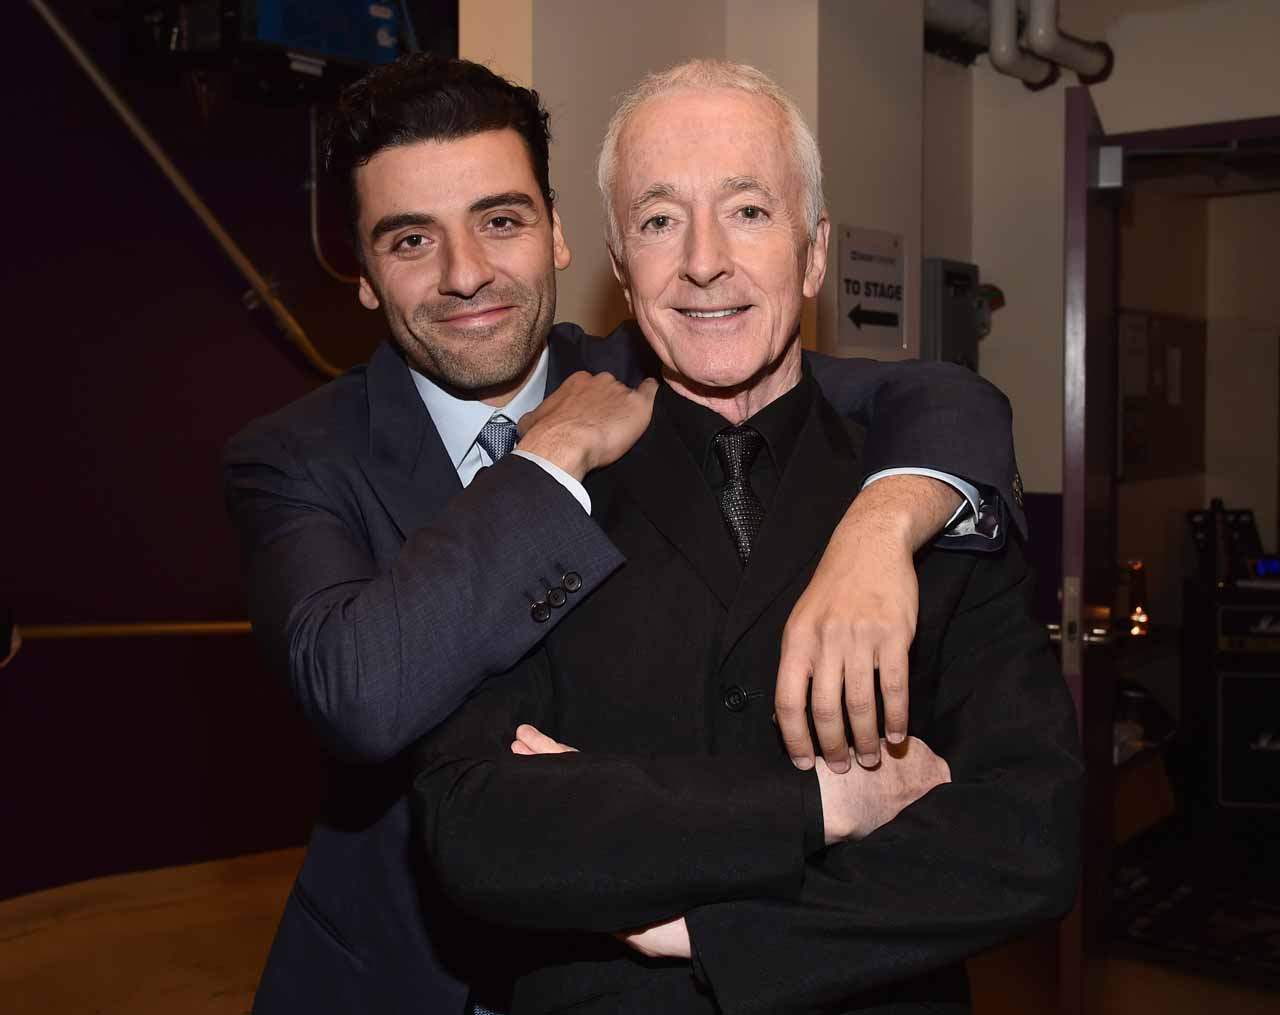 HOLLYWOOD, CA - DECEMBER 14: Actors Oscar Isaac (L) and Anthony Daniels attend the World Premiere of ?Star Wars: The Force Awakens? at the Dolby, El Capitan, and TCL Theatres on December 14, 2015 in Hollywood, California. (Photo by Alberto E. Rodriguez/Getty Images for Disney) *** Local Caption *** Oscar Isaac;Anthony Daniels